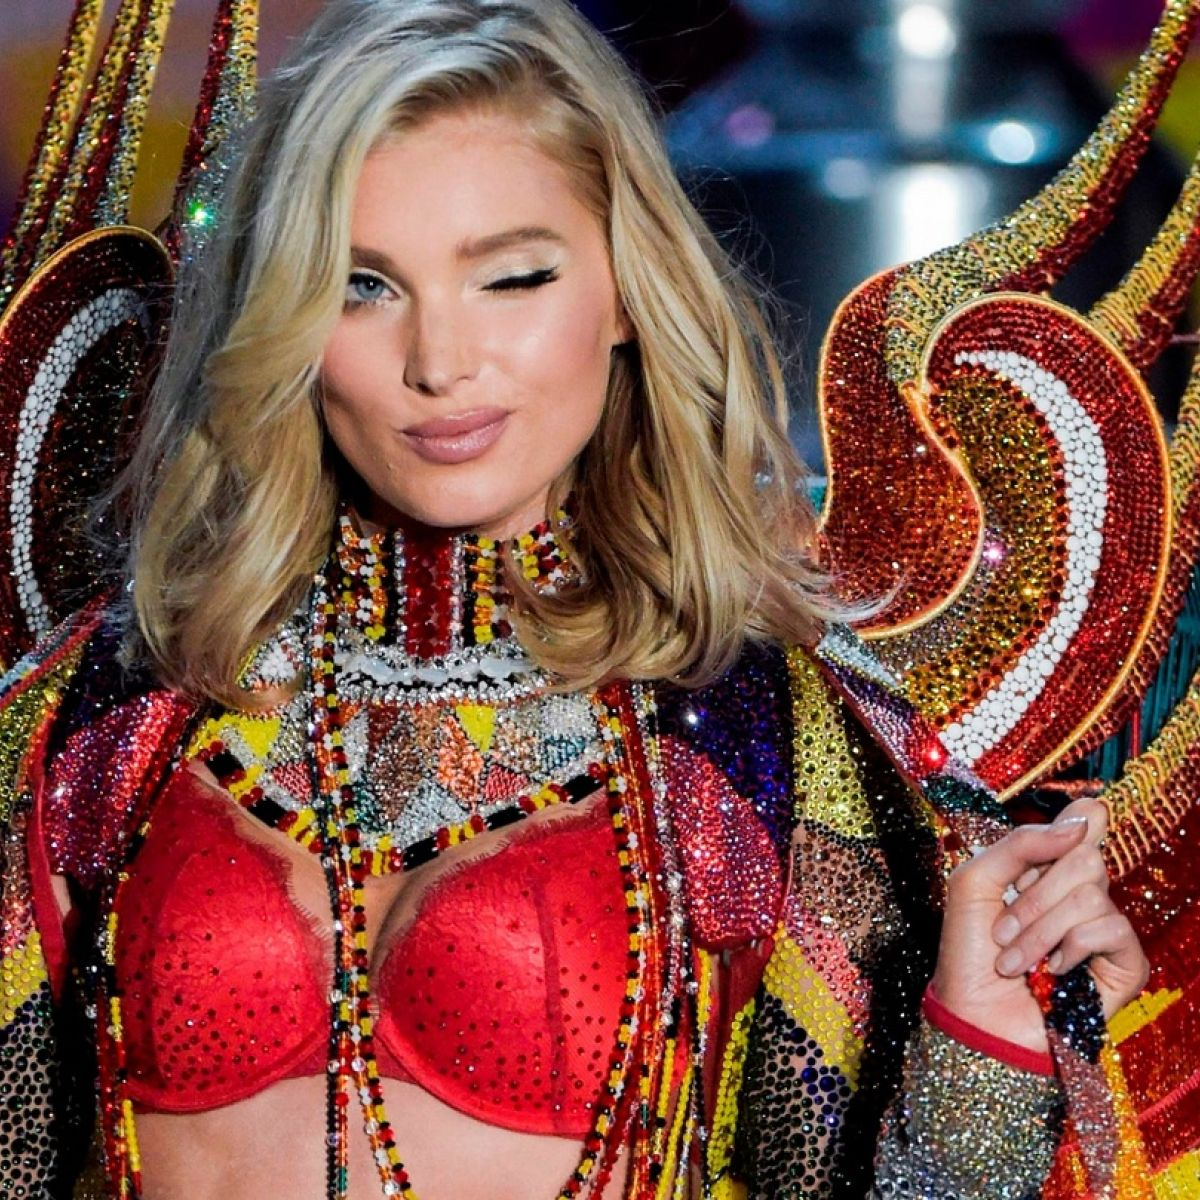 885709725141e Victoria's Secret: Is it just 'Playboy' in disguise?